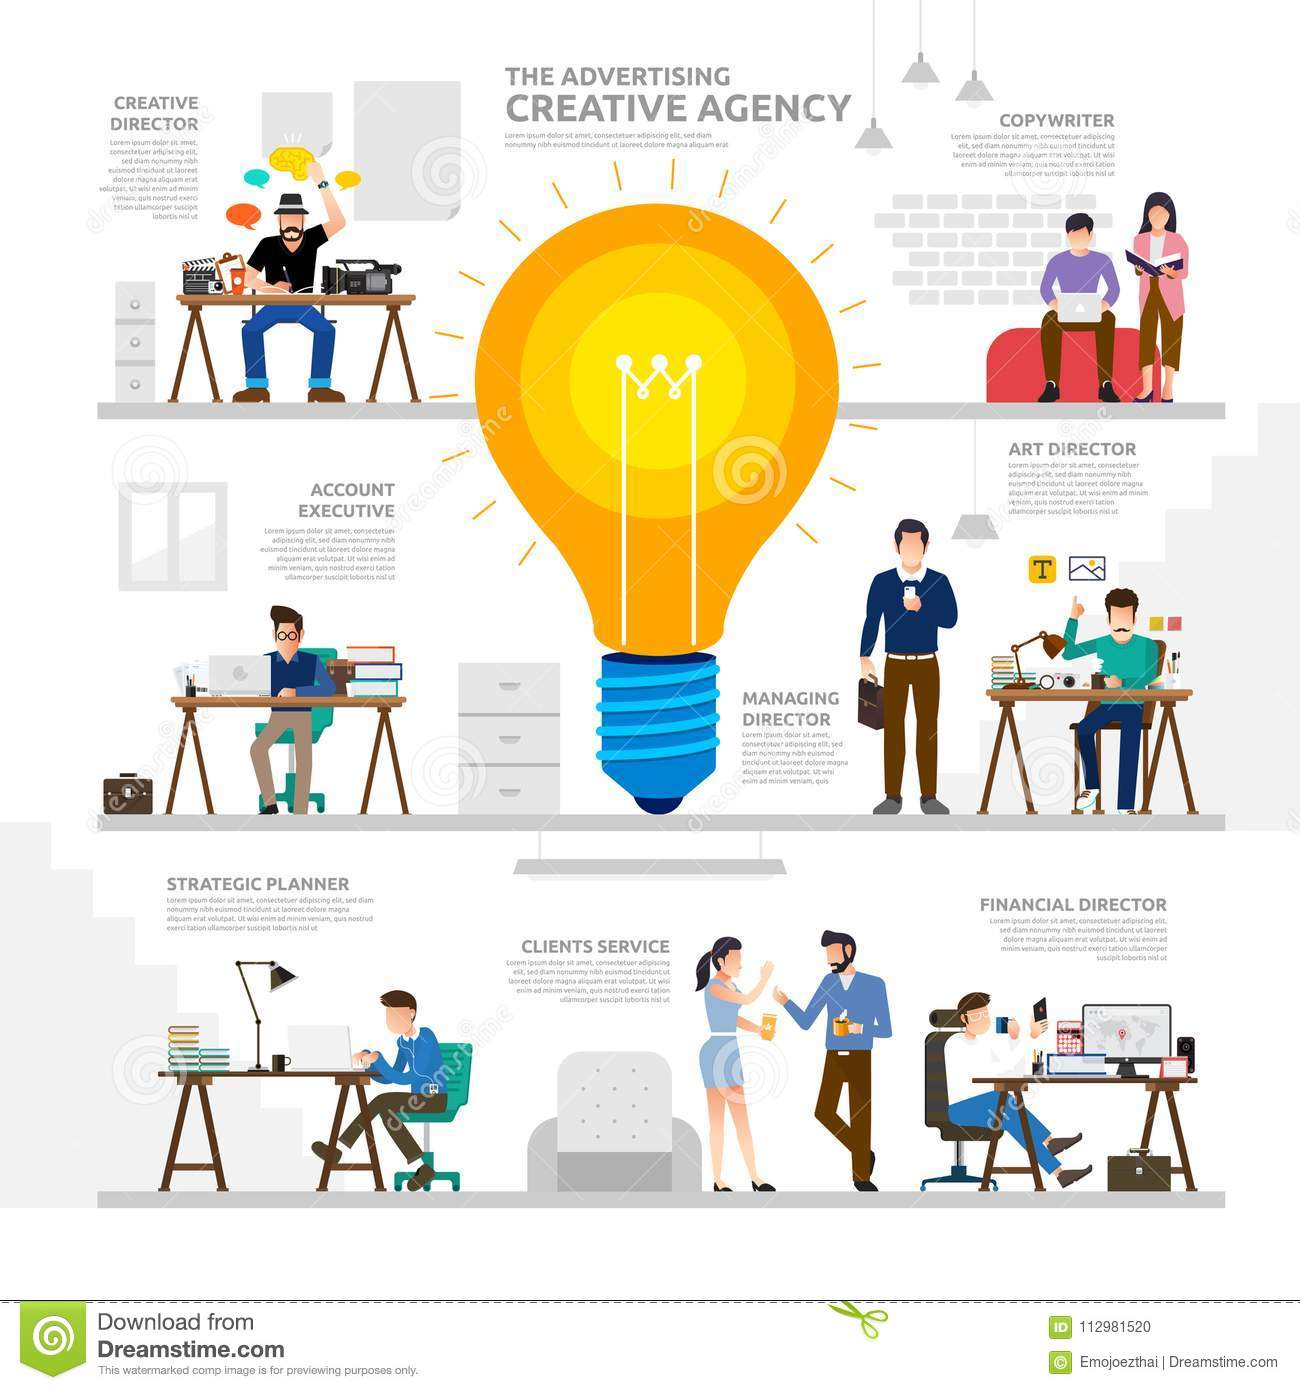 Illustration concept advertising creative agency. Working group